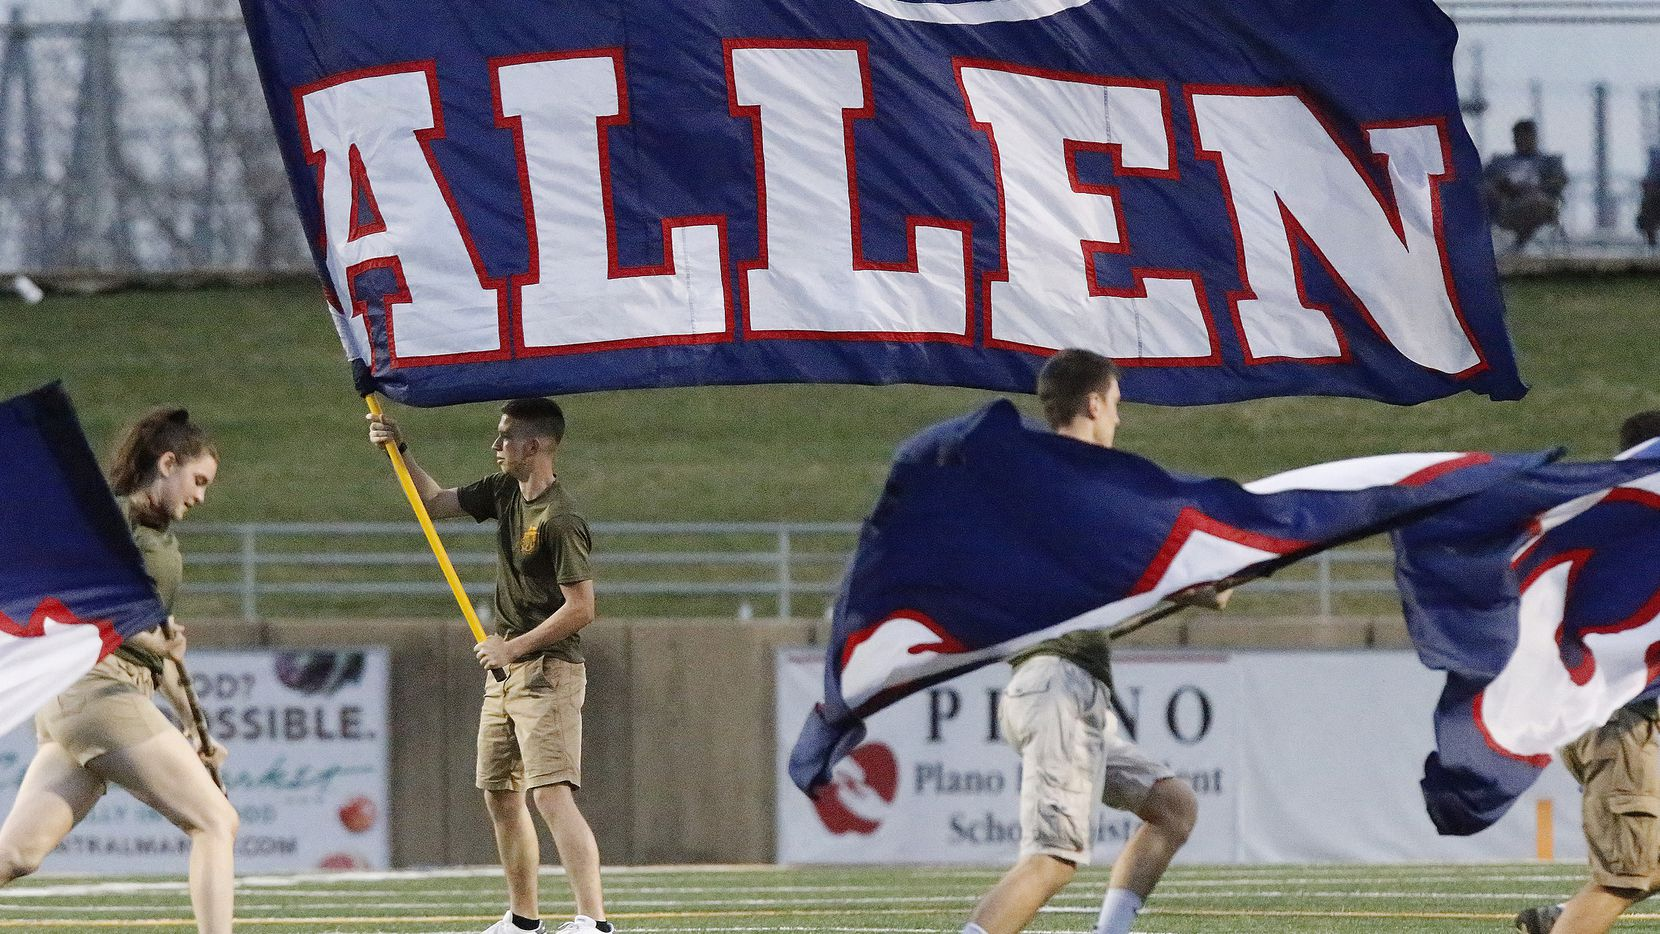 Aidan McGlothlin, 16, with the Allen High School Marine Core JROTC waves an Allen flag after a touchdown during the first half as Plano High School hosted Allen High School in a District 9-6A football game at Clark Stadium in Plano in 2019.